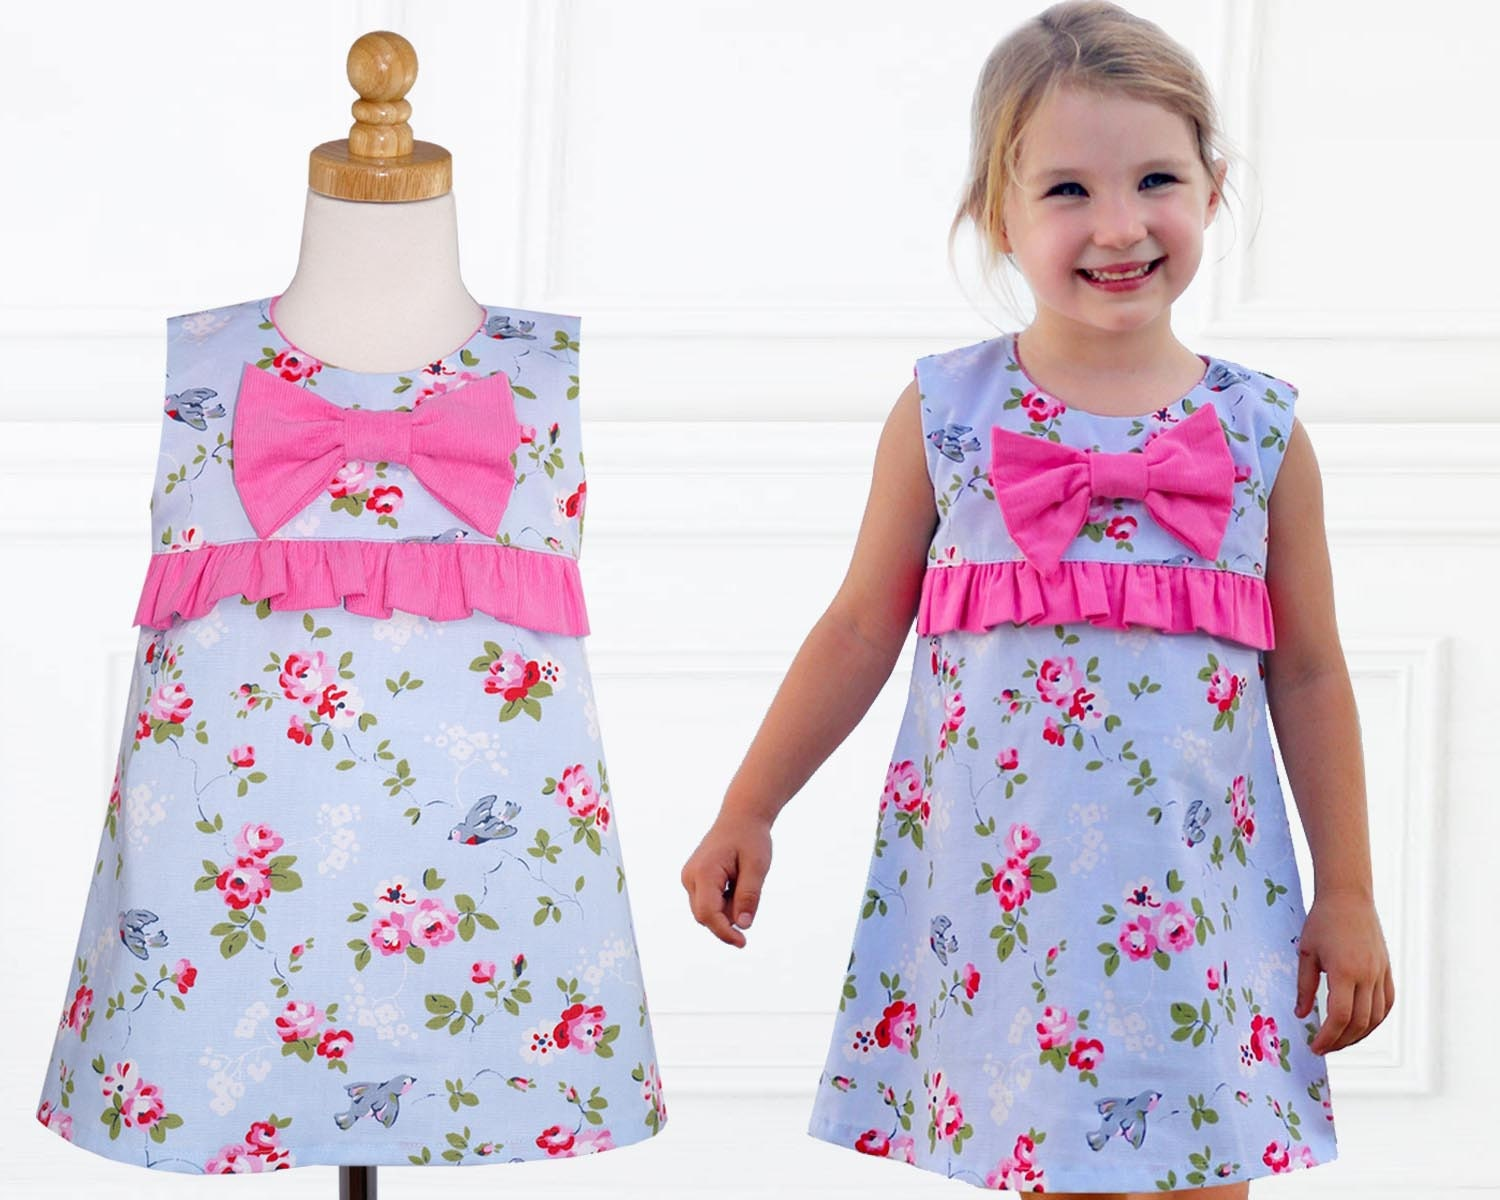 3a072241b22ab Girls Dress Patterns, Dress Sewing Pattern, Little Girls Dress Patterns  PDF, A-line Dress Pattern, Frock Patterns for Girls LUCY